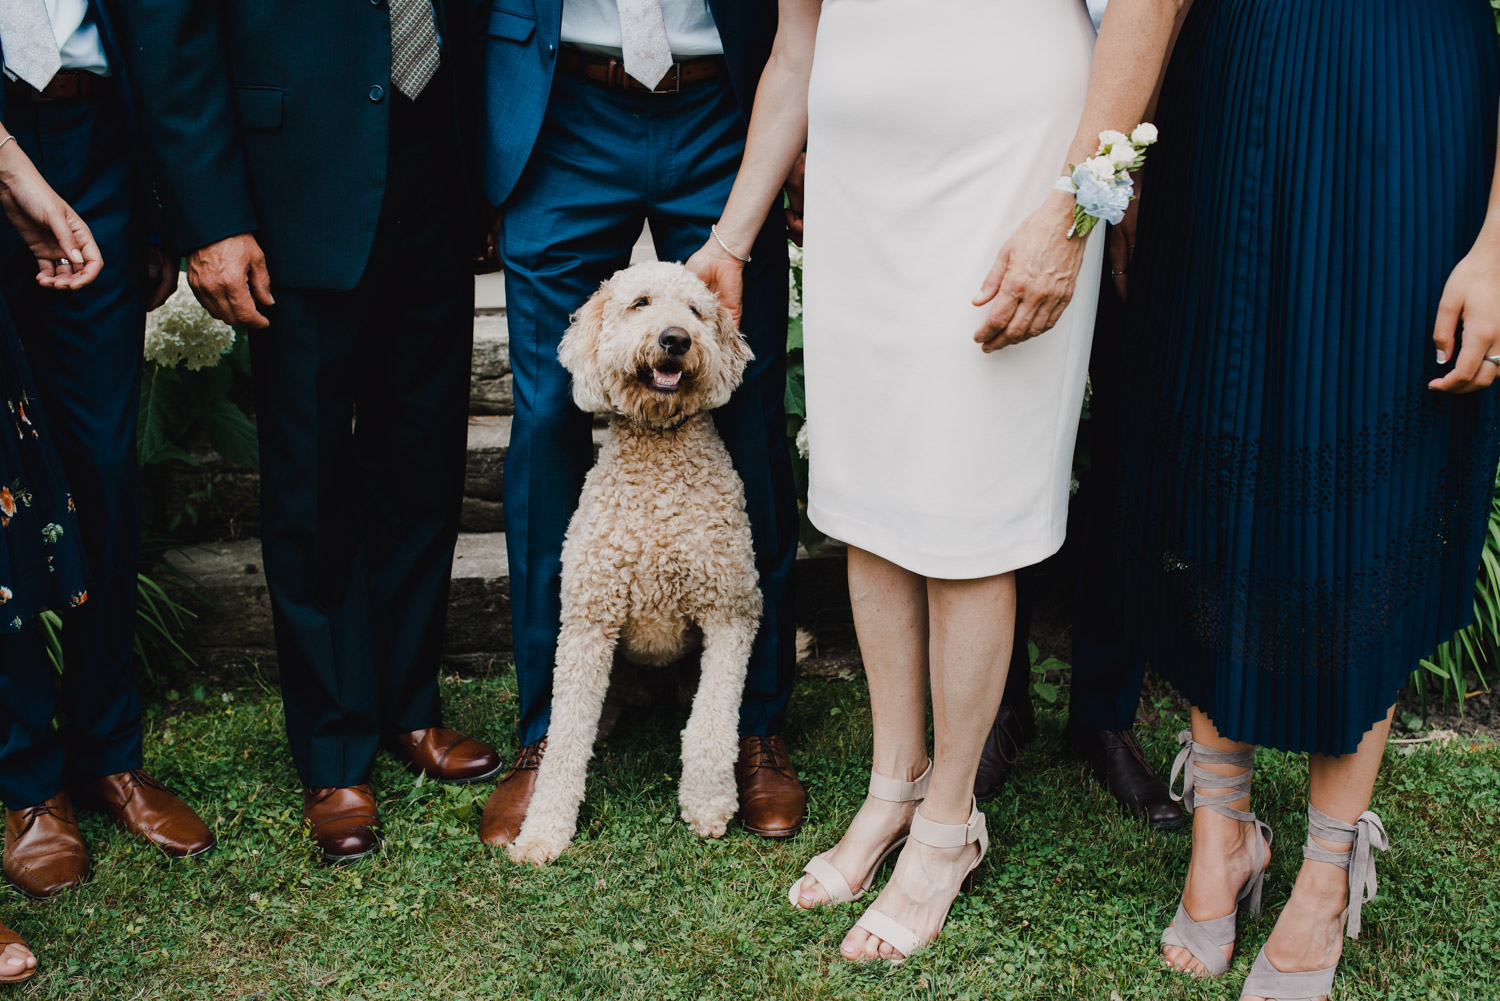 The family dog poses for a portrait surrounded by her family